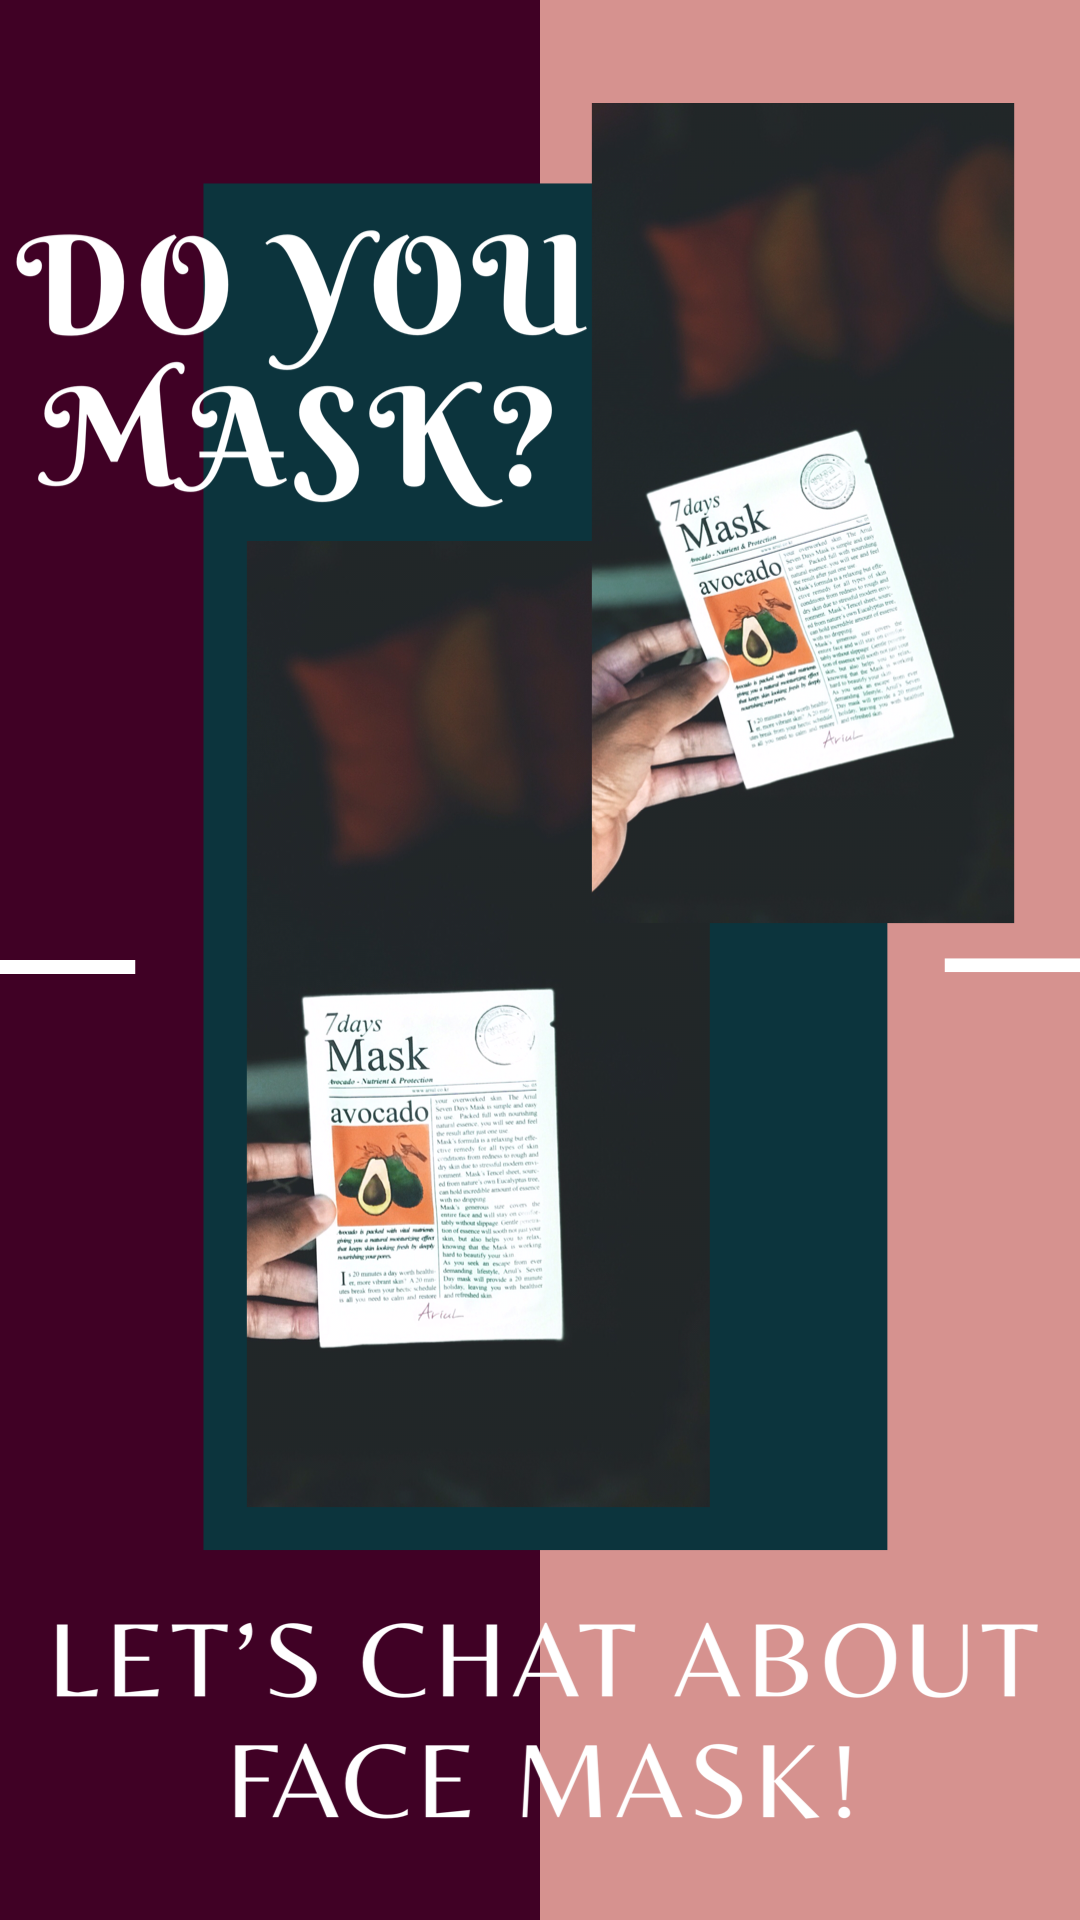 Do You Guys Still Mask Or What?